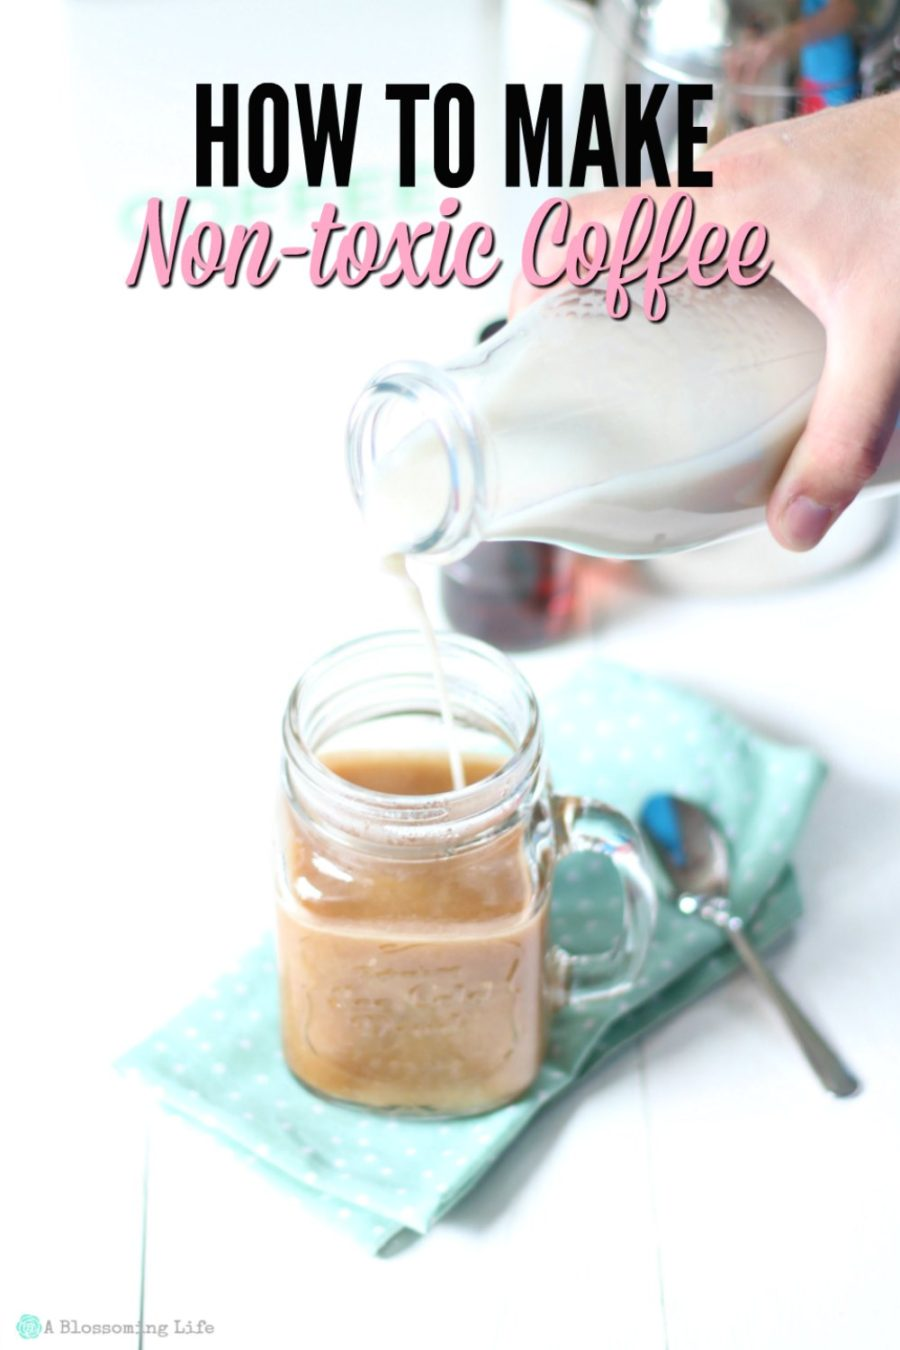 How To Make Non-toxic Coffee